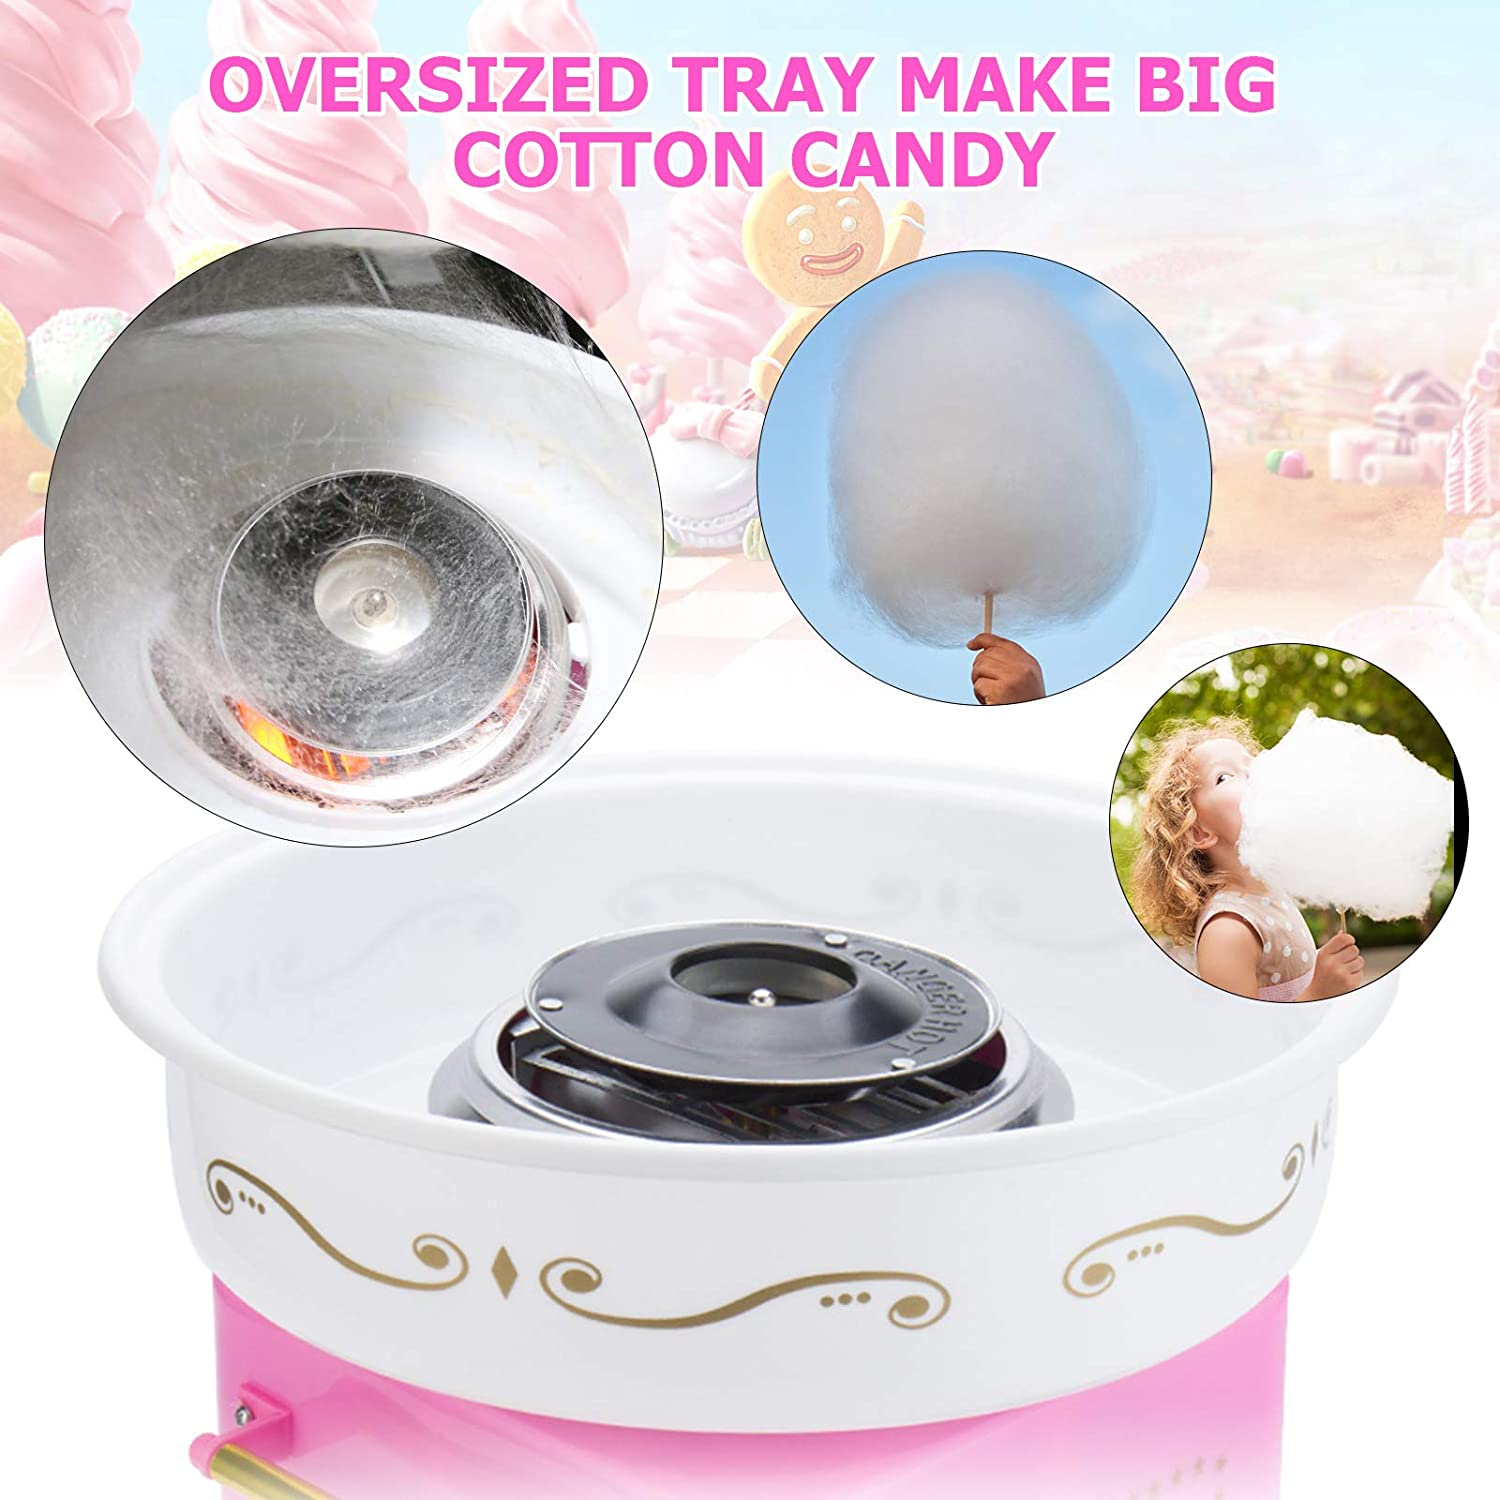 Gulito Mini Cotton Candy Machine,DIY Cotton Candy Floss Maker Easy for Use,Pink Trolley Creative Christmas Gift Perfect for Kids